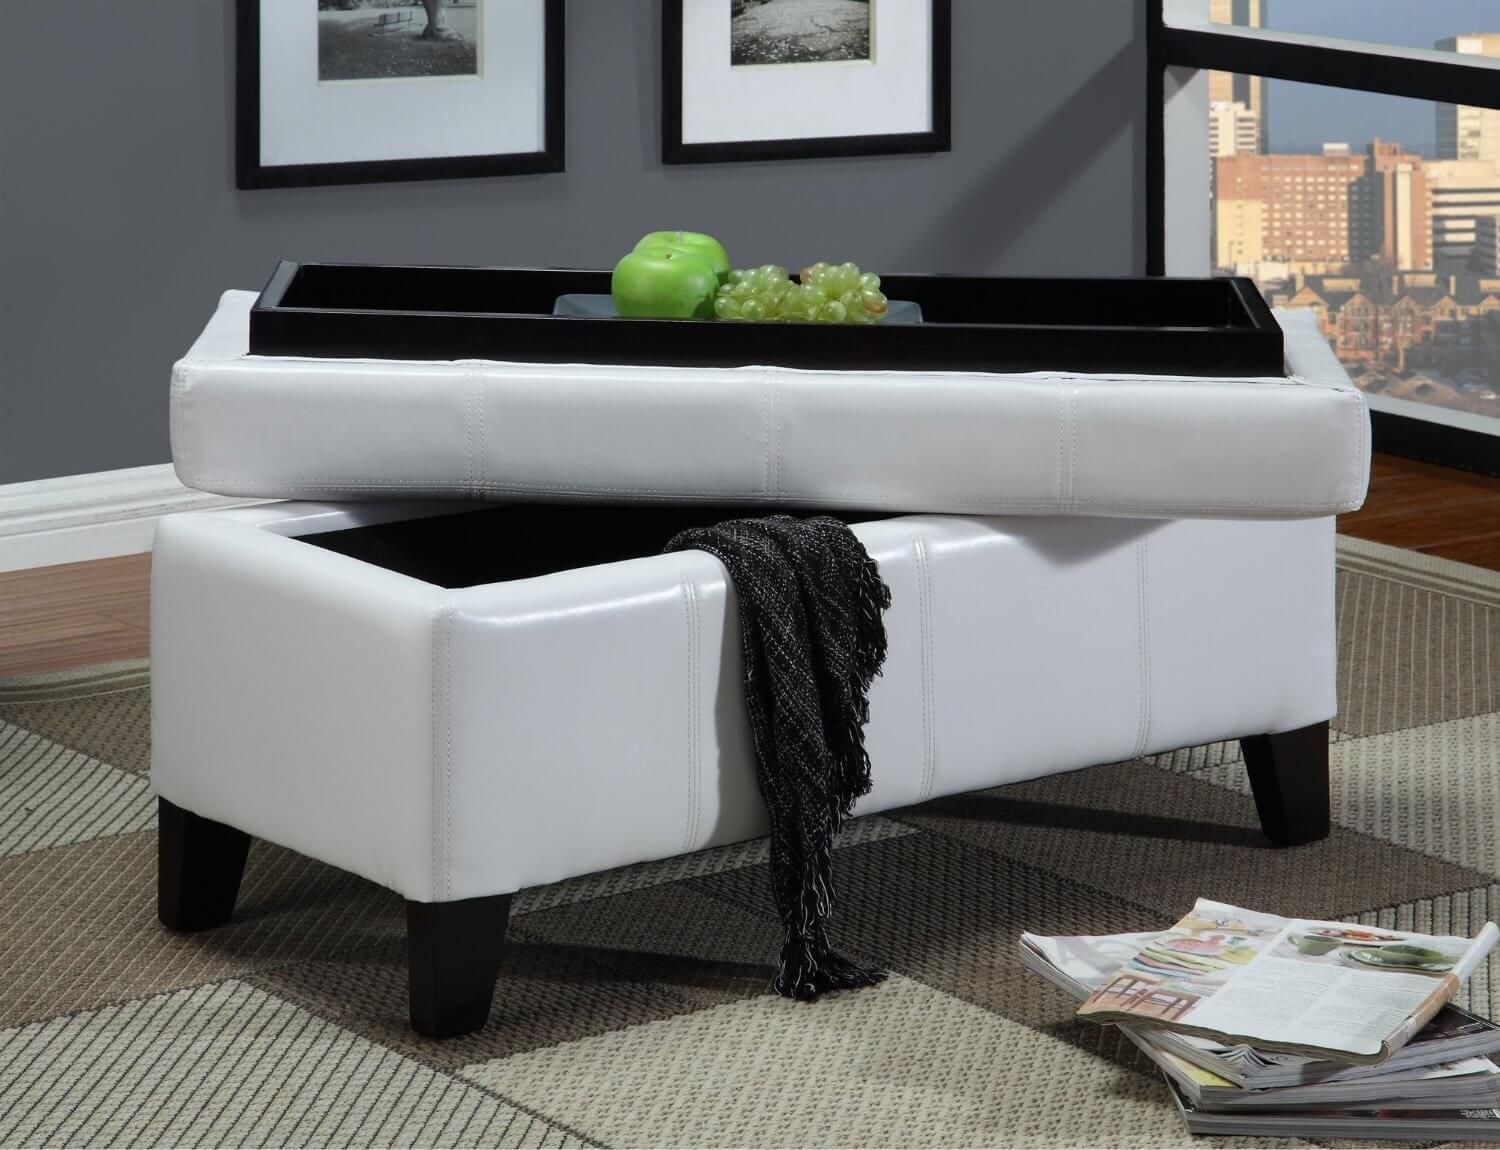 Surprising 25 White Leather Ottomans Square Rectangle White Gmtry Best Dining Table And Chair Ideas Images Gmtryco